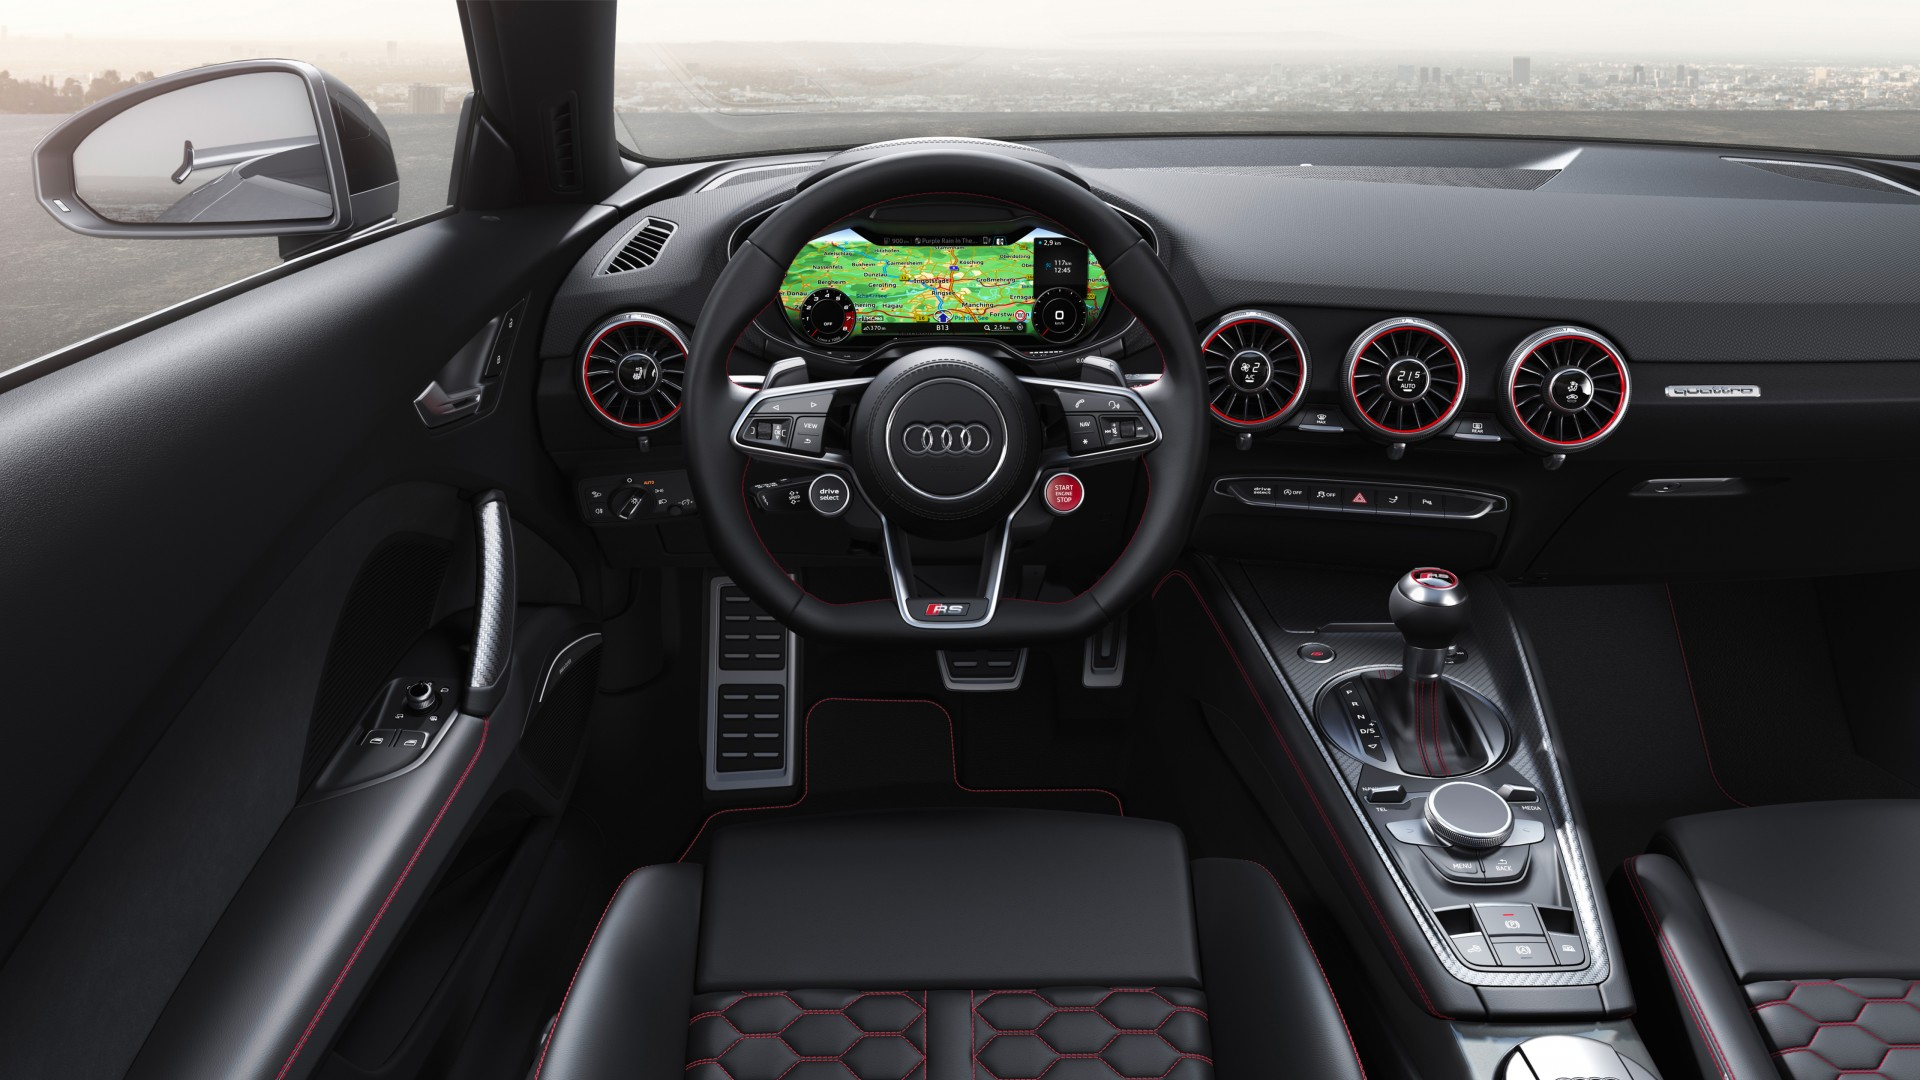 Audi TT RS Roadster 2019 4K Interior Wallpaper | HD Car ...